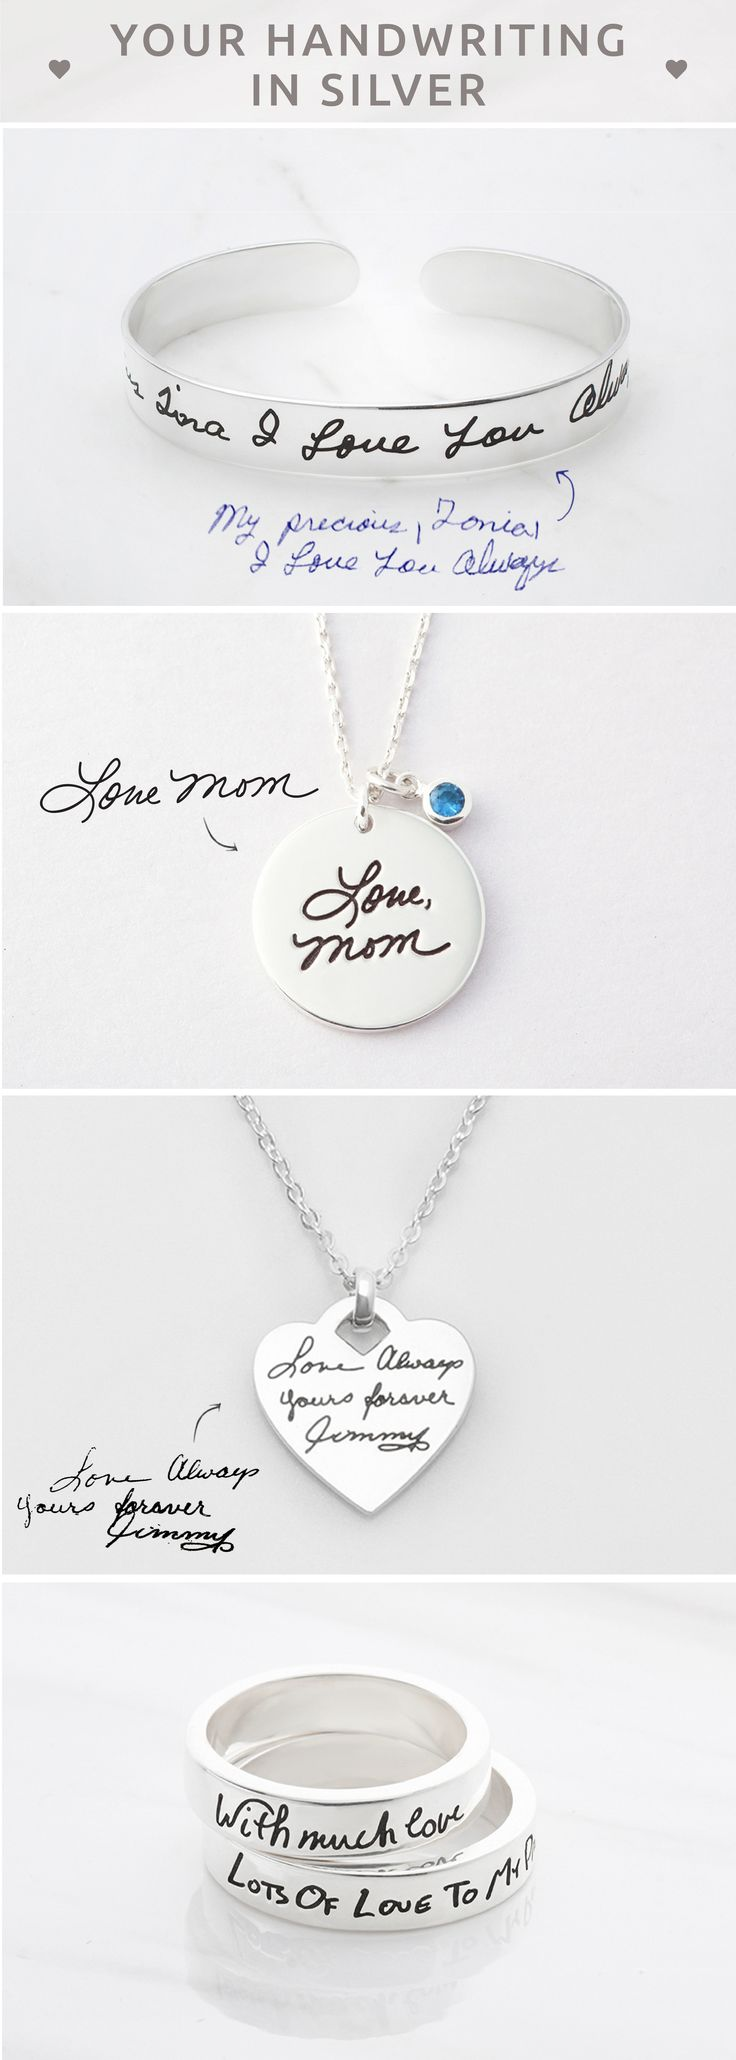 Handwriting Jewelry • Kid's Drawing Disc Necklace • Personalized Signature Necklace  • Bracelet with Handwriting Charm • Open Engraved Handwriting Ring • Personalized handwritten jewelry • Actual handwriting jewelry  • Handwritten jewelry • Memorial jewelry • Sympathy jewelry • Jewelry for sister • christmas gifts for teachers • engagement present ideas • graduation gift ideas for her • cool christmas gifts for teenage girl • mom birthday gifts • christmas gift ideas for mom